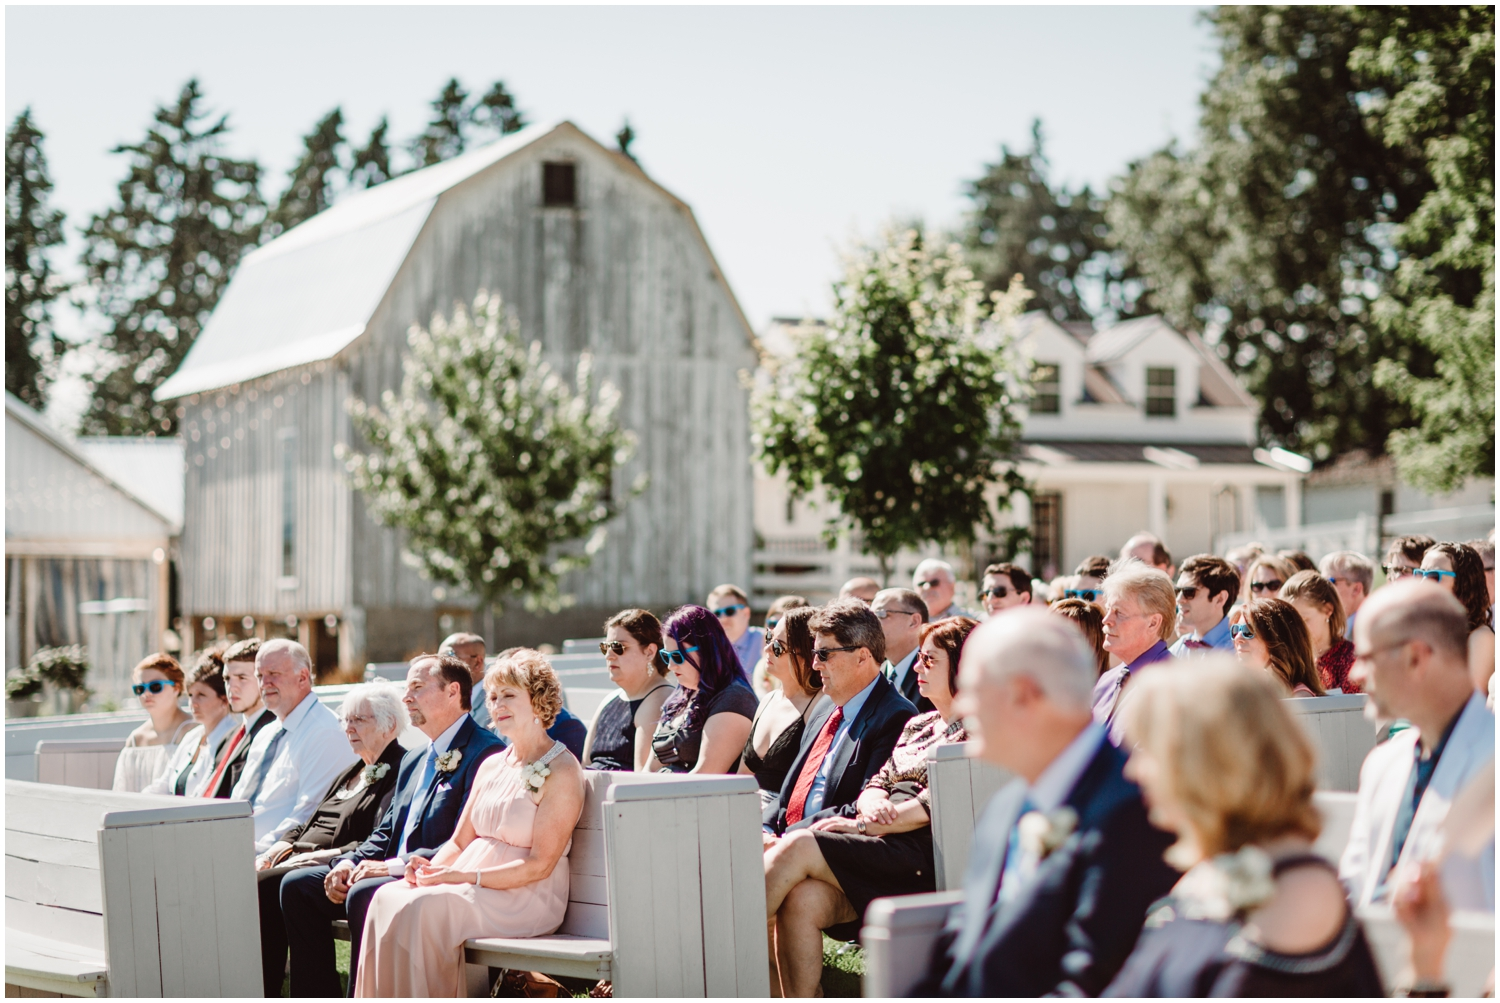 outdoor wedding ceremony at Legacy Hill Farm